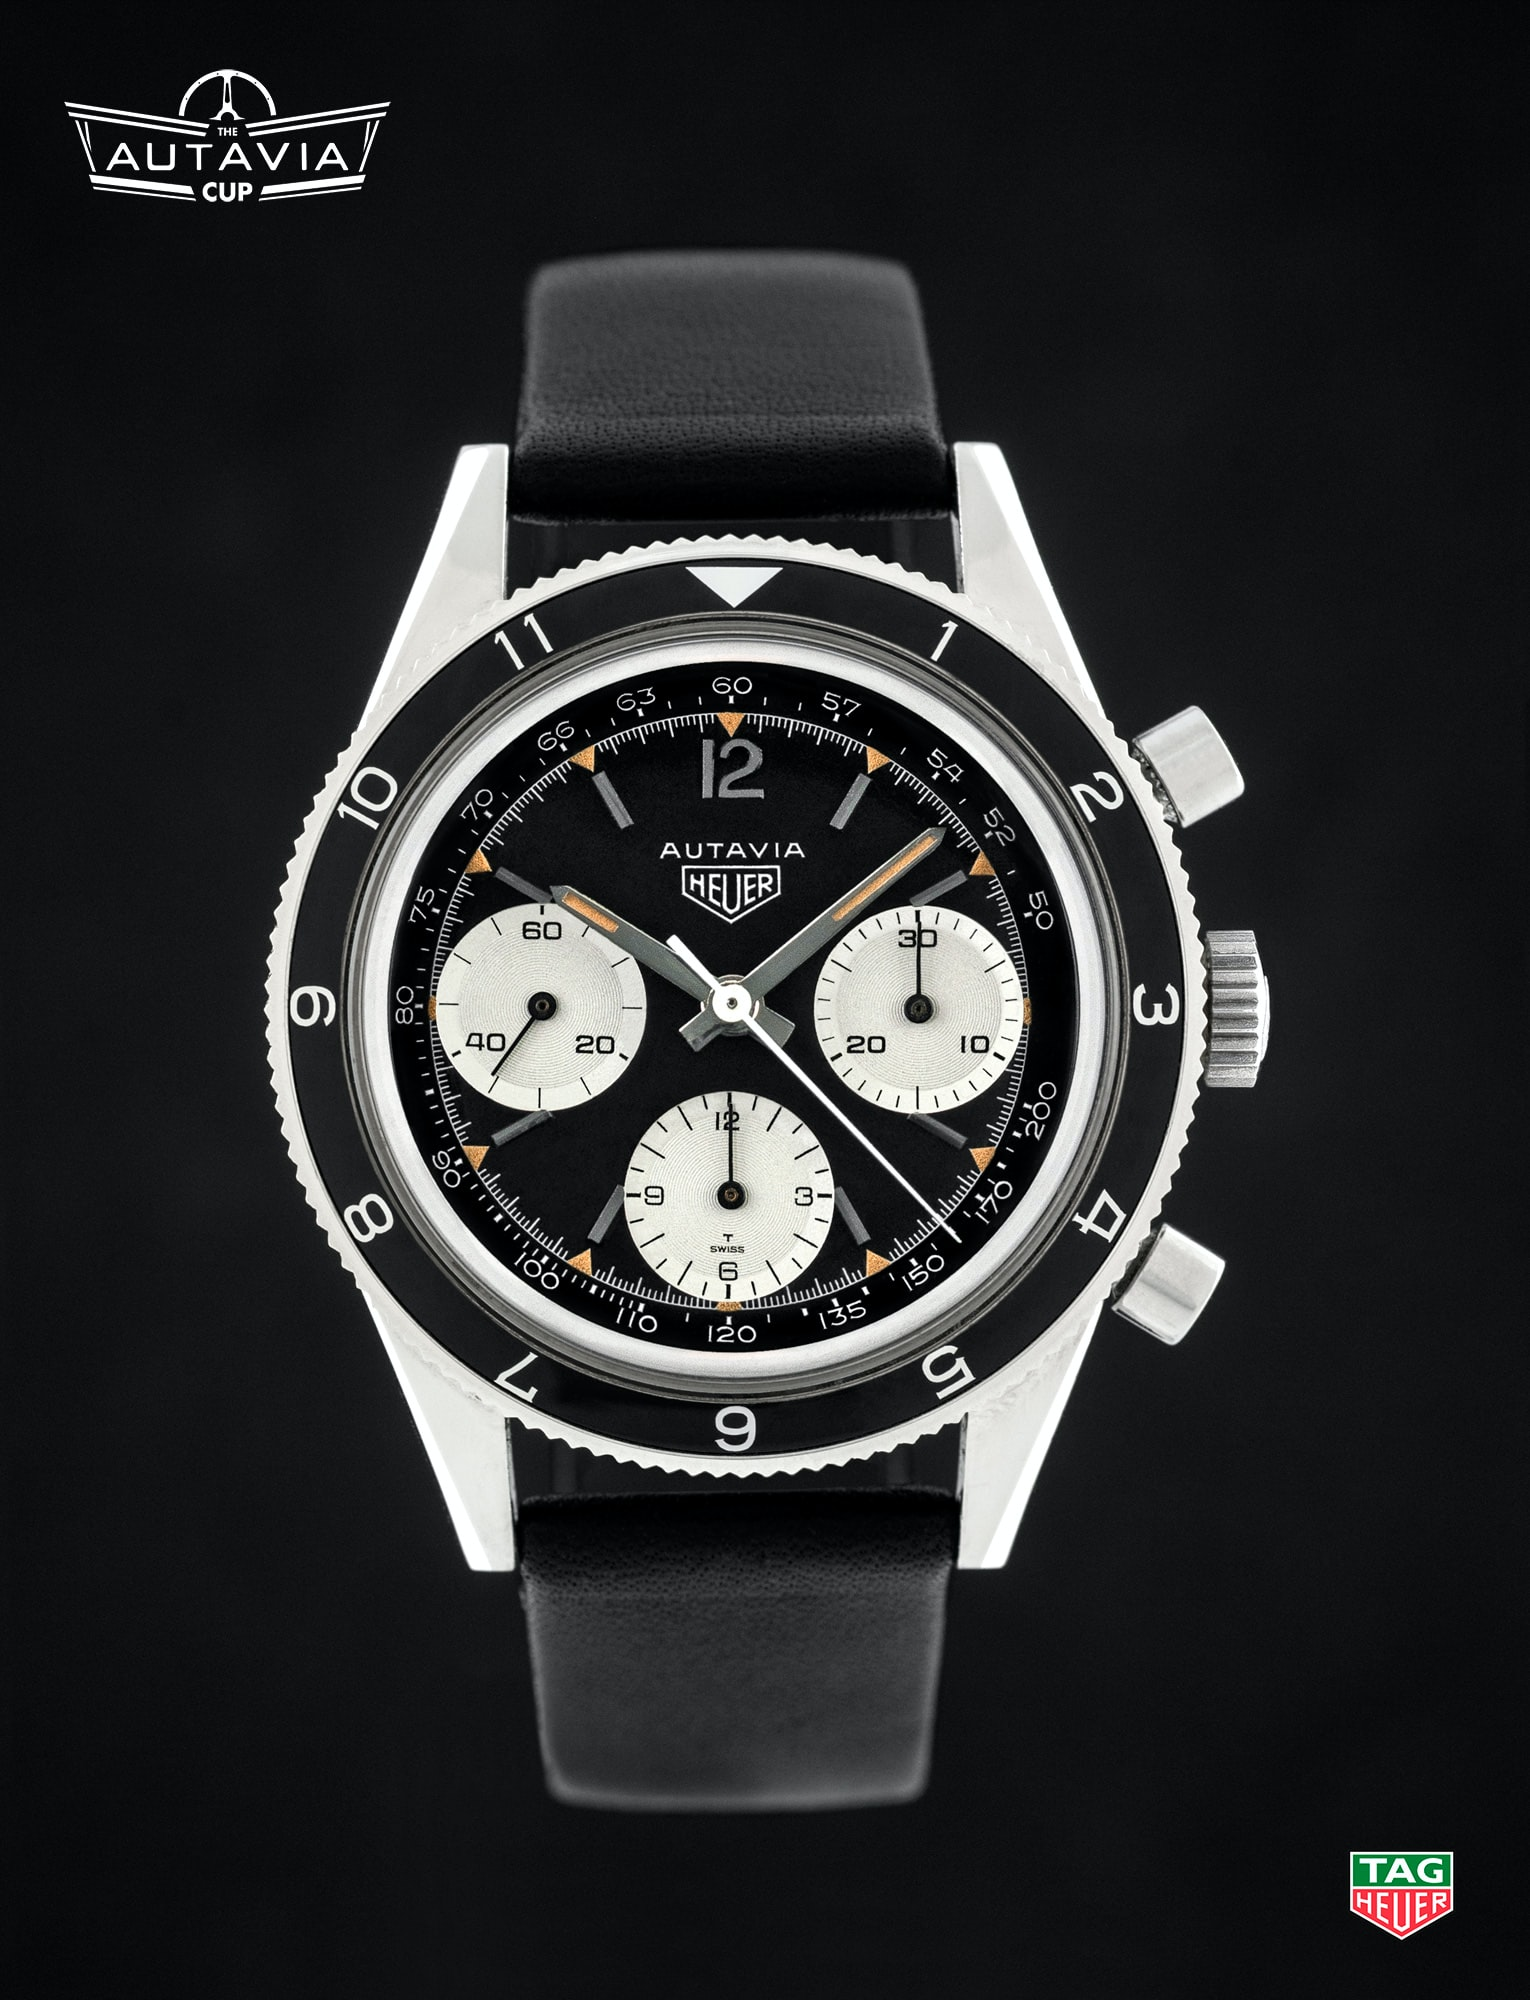 Heuer Autavia Ref. 2446 Tachy TAG Heuer Will Relaunch The Autavia In 2017 – And Fans Get To Choose The Model TAG Heuer Will Relaunch The Autavia In 2017 – And Fans Get To Choose The Model 12 2446 Tachy